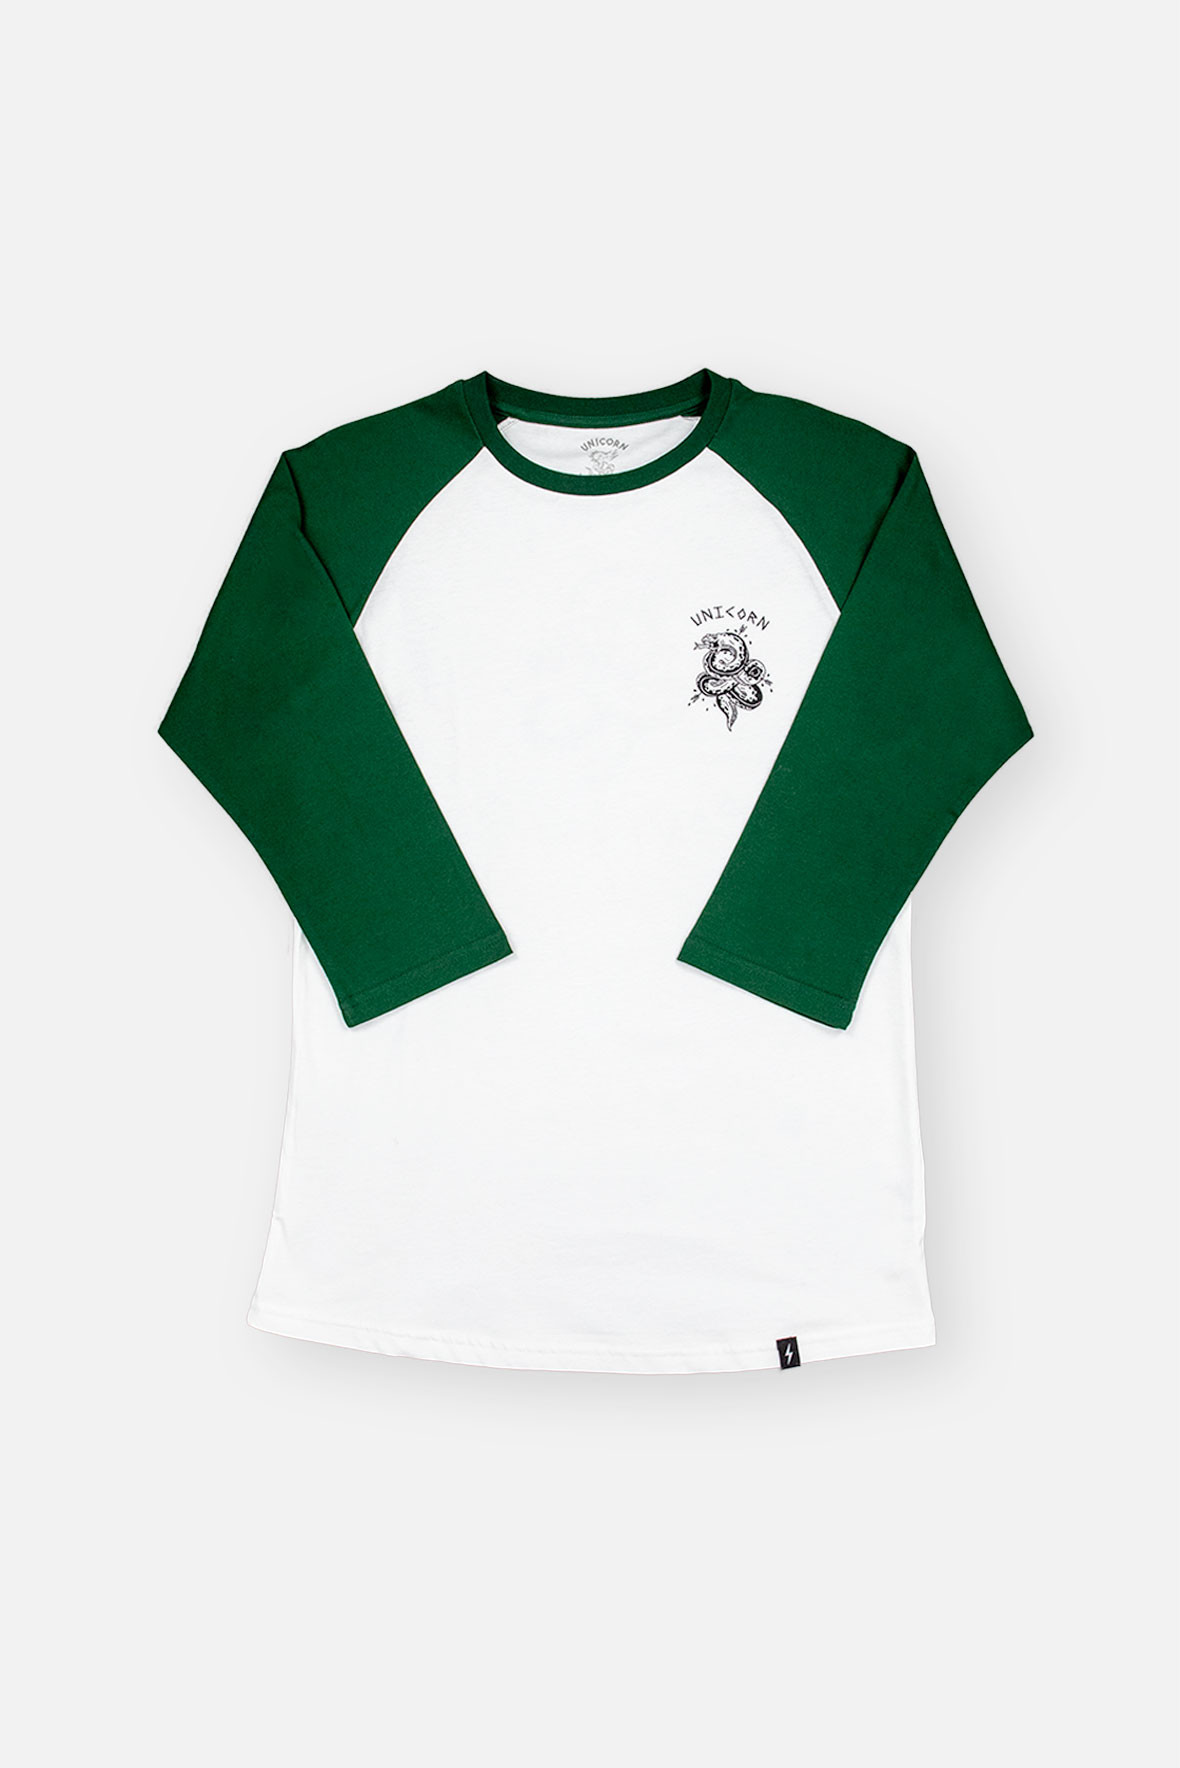 Raglan Don't Snake Green